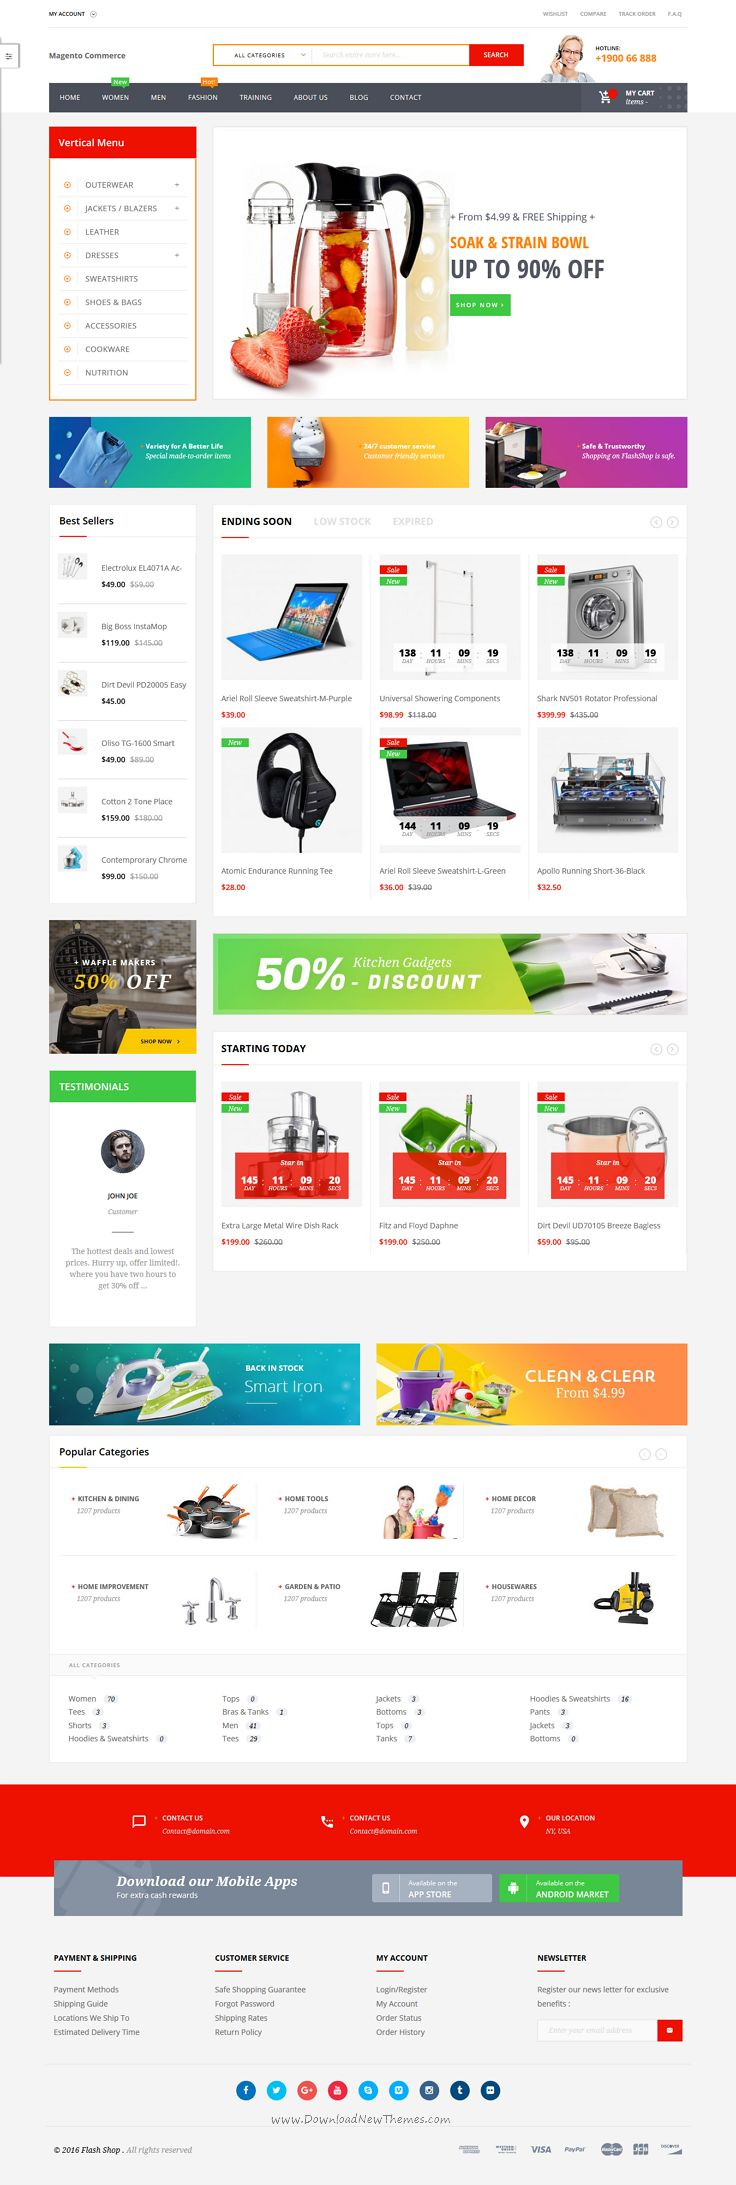 Flashshop is awesome 6 in 1 #Magento 2 theme for multipurpose #electronic #store eCommerce website download now➯  https://www.a2hosting.com/opencart-hosting?aid=jrstudioweb&bid=63a153d2